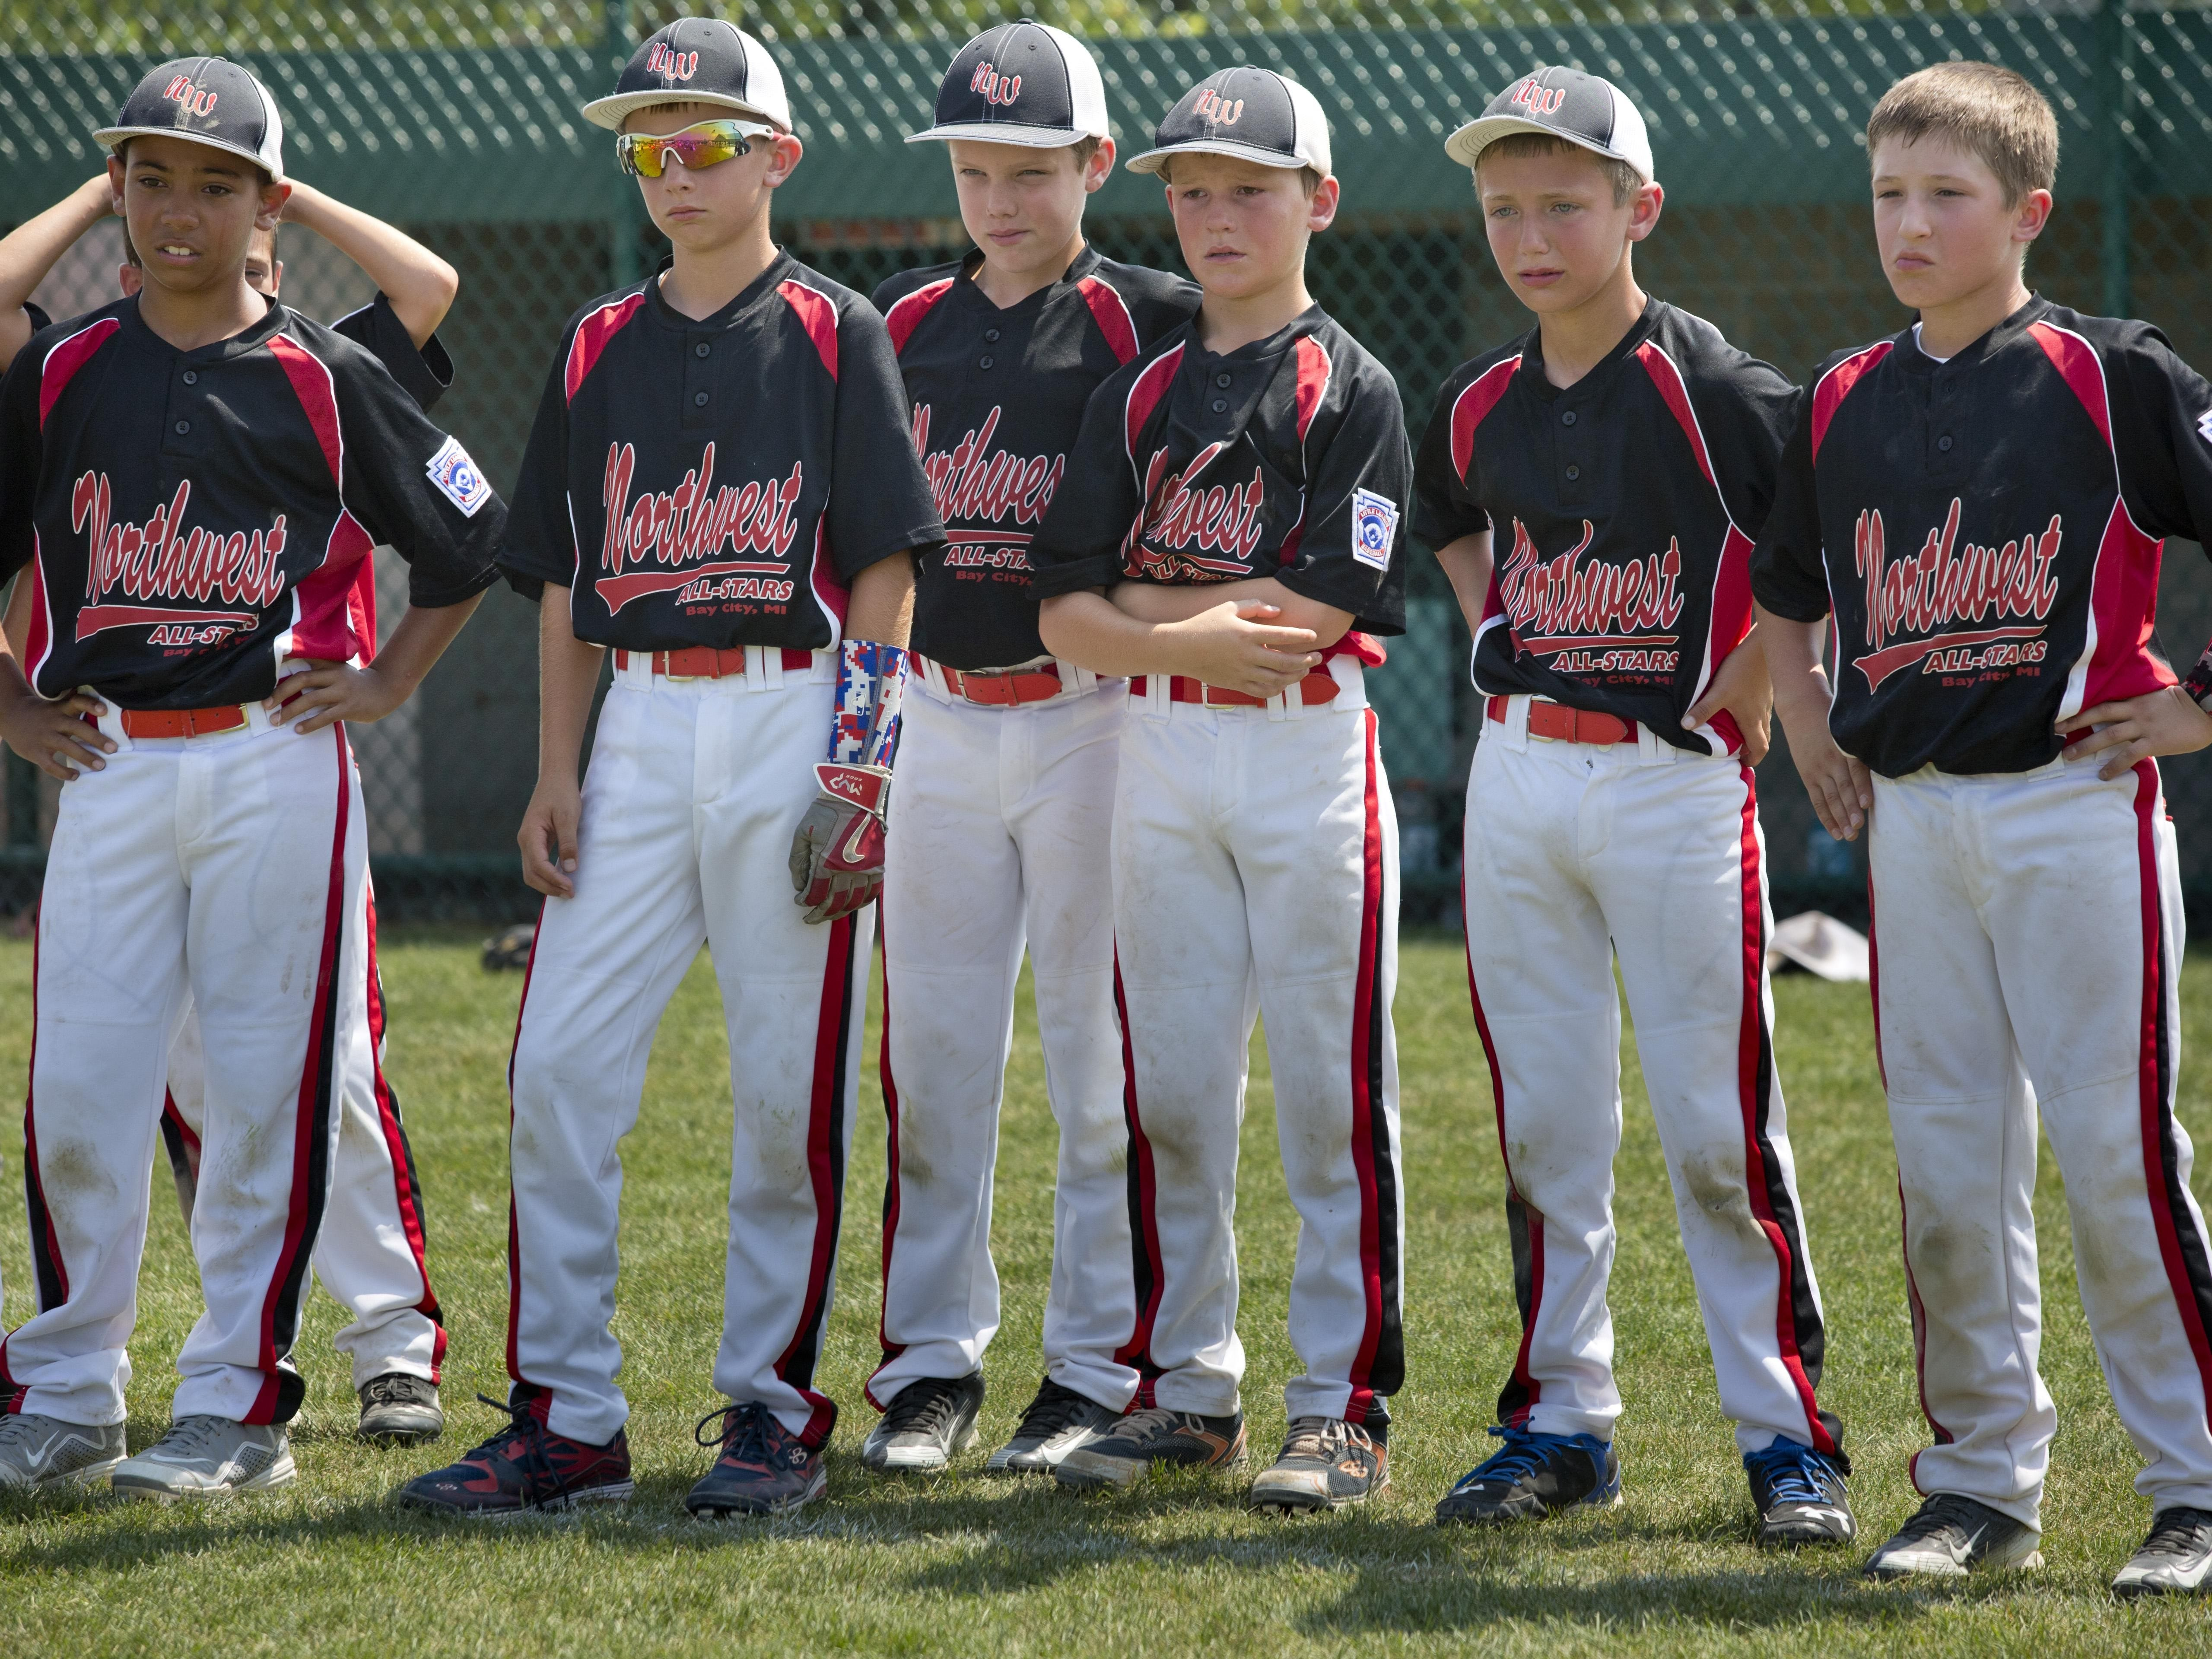 Bay City Northwest players look on after losing a state final 10-and-under baseball game Wednesday, July 29, 2015 in St. Clair.